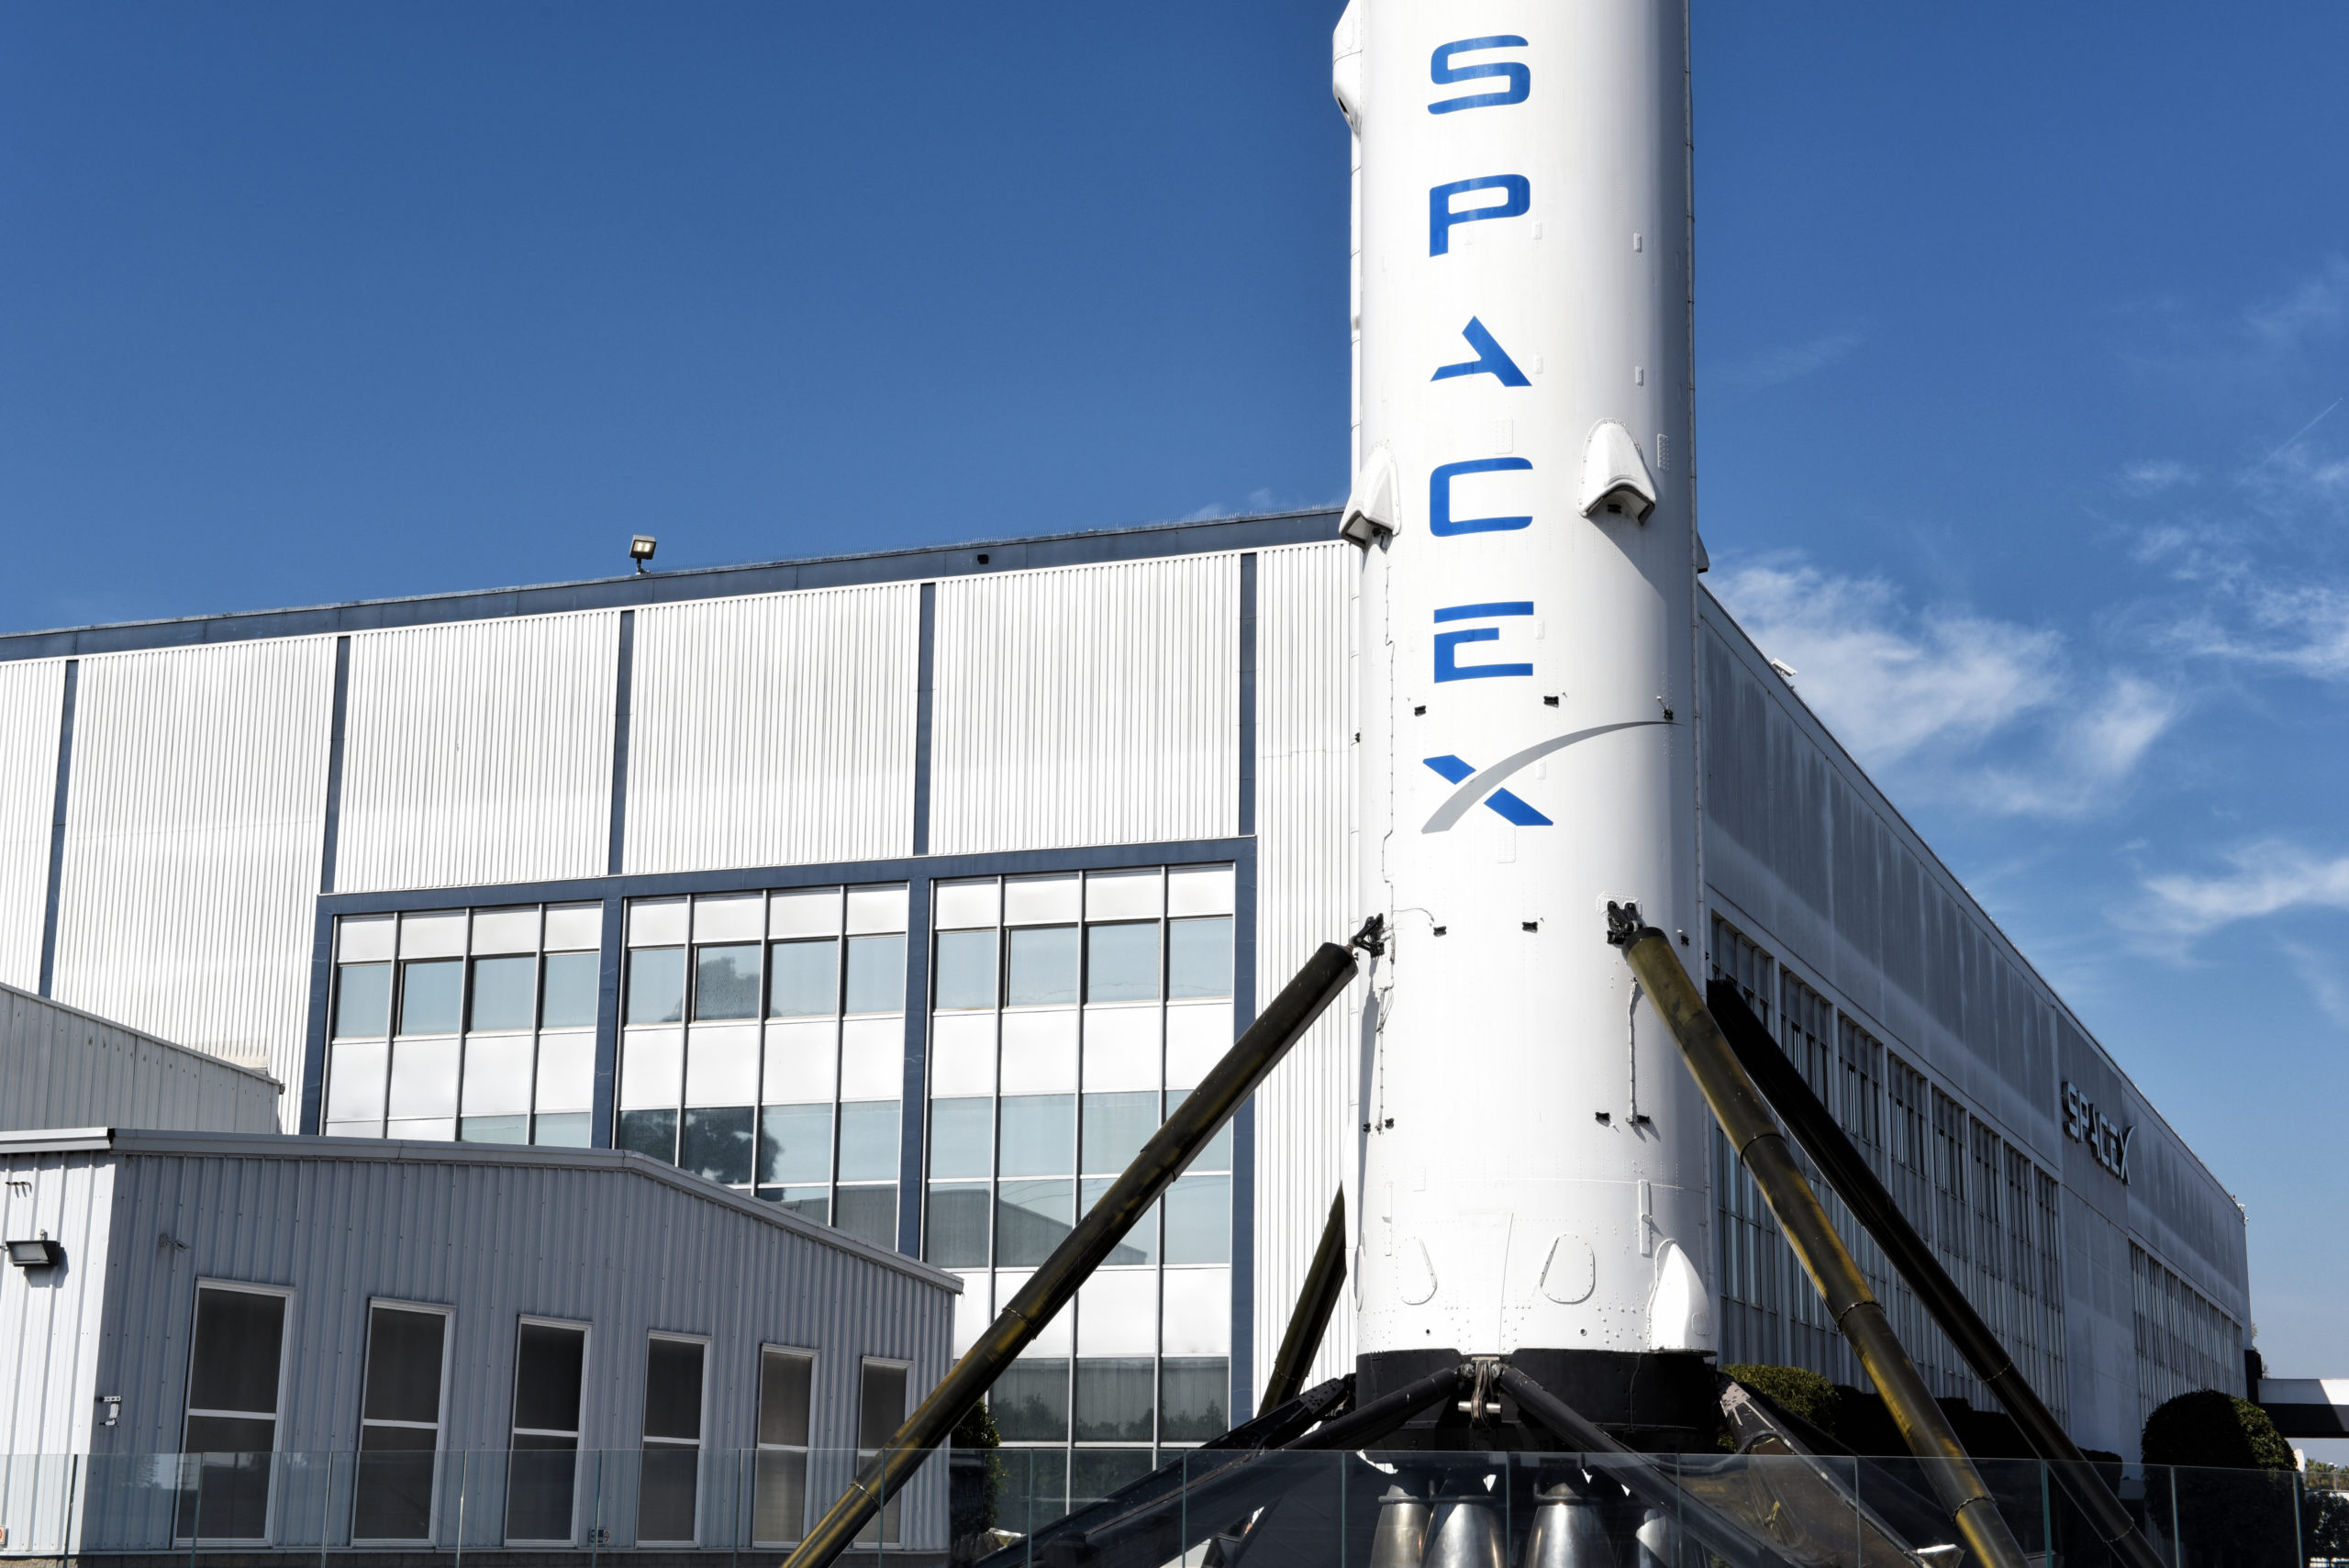 HAWTHORNE, CALIFORNIA – 17 FEB 2020: Closeup of a Falcon 9 Booster rocket at Space Exploration Technologies Corp, trading as SpaceX, a private American aerospace company.